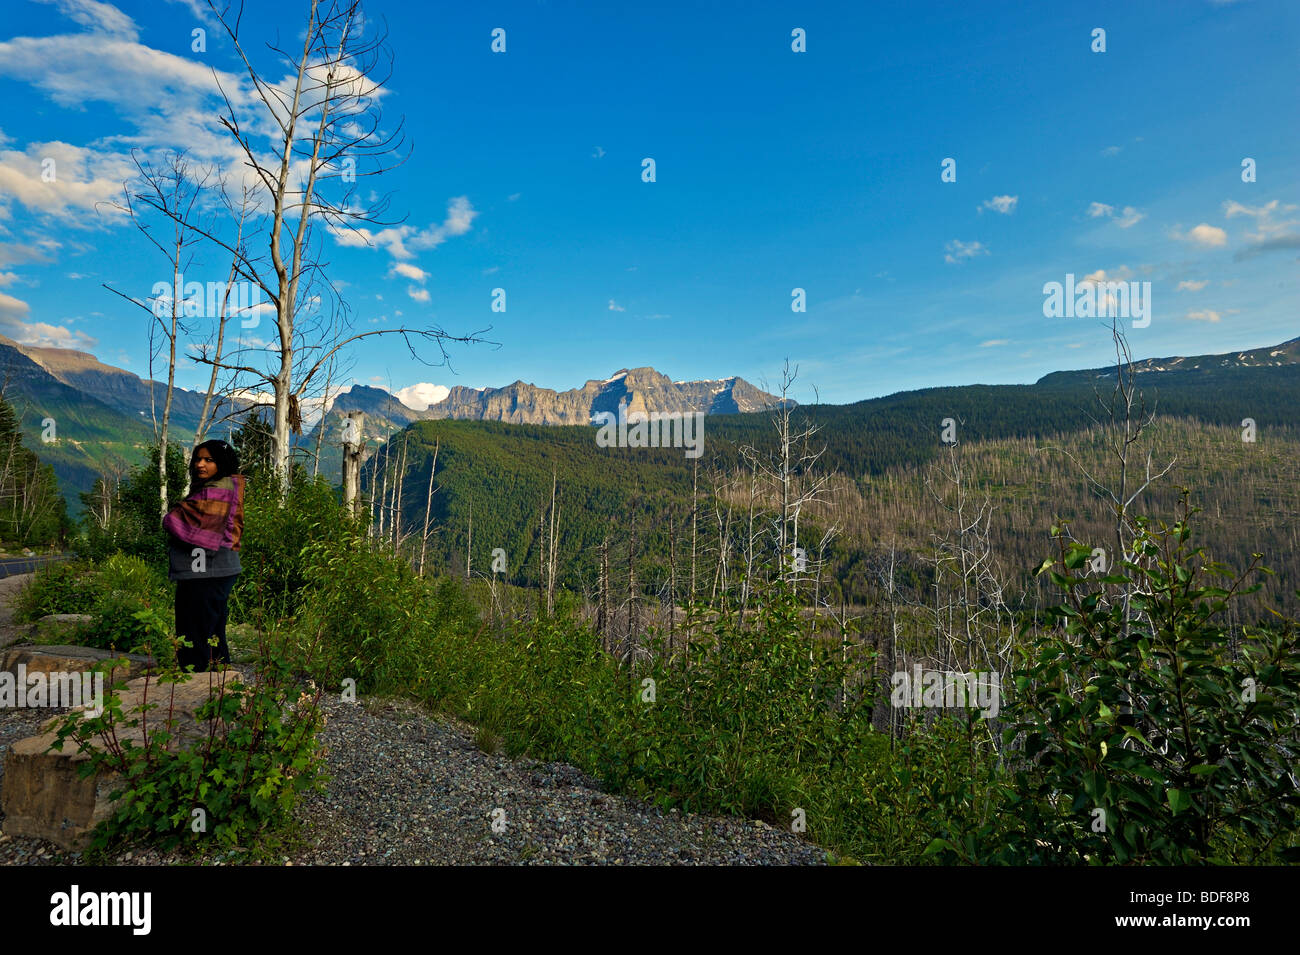 Tourist in Logan pass in the Glacier national park, Montana, USA - Stock Image